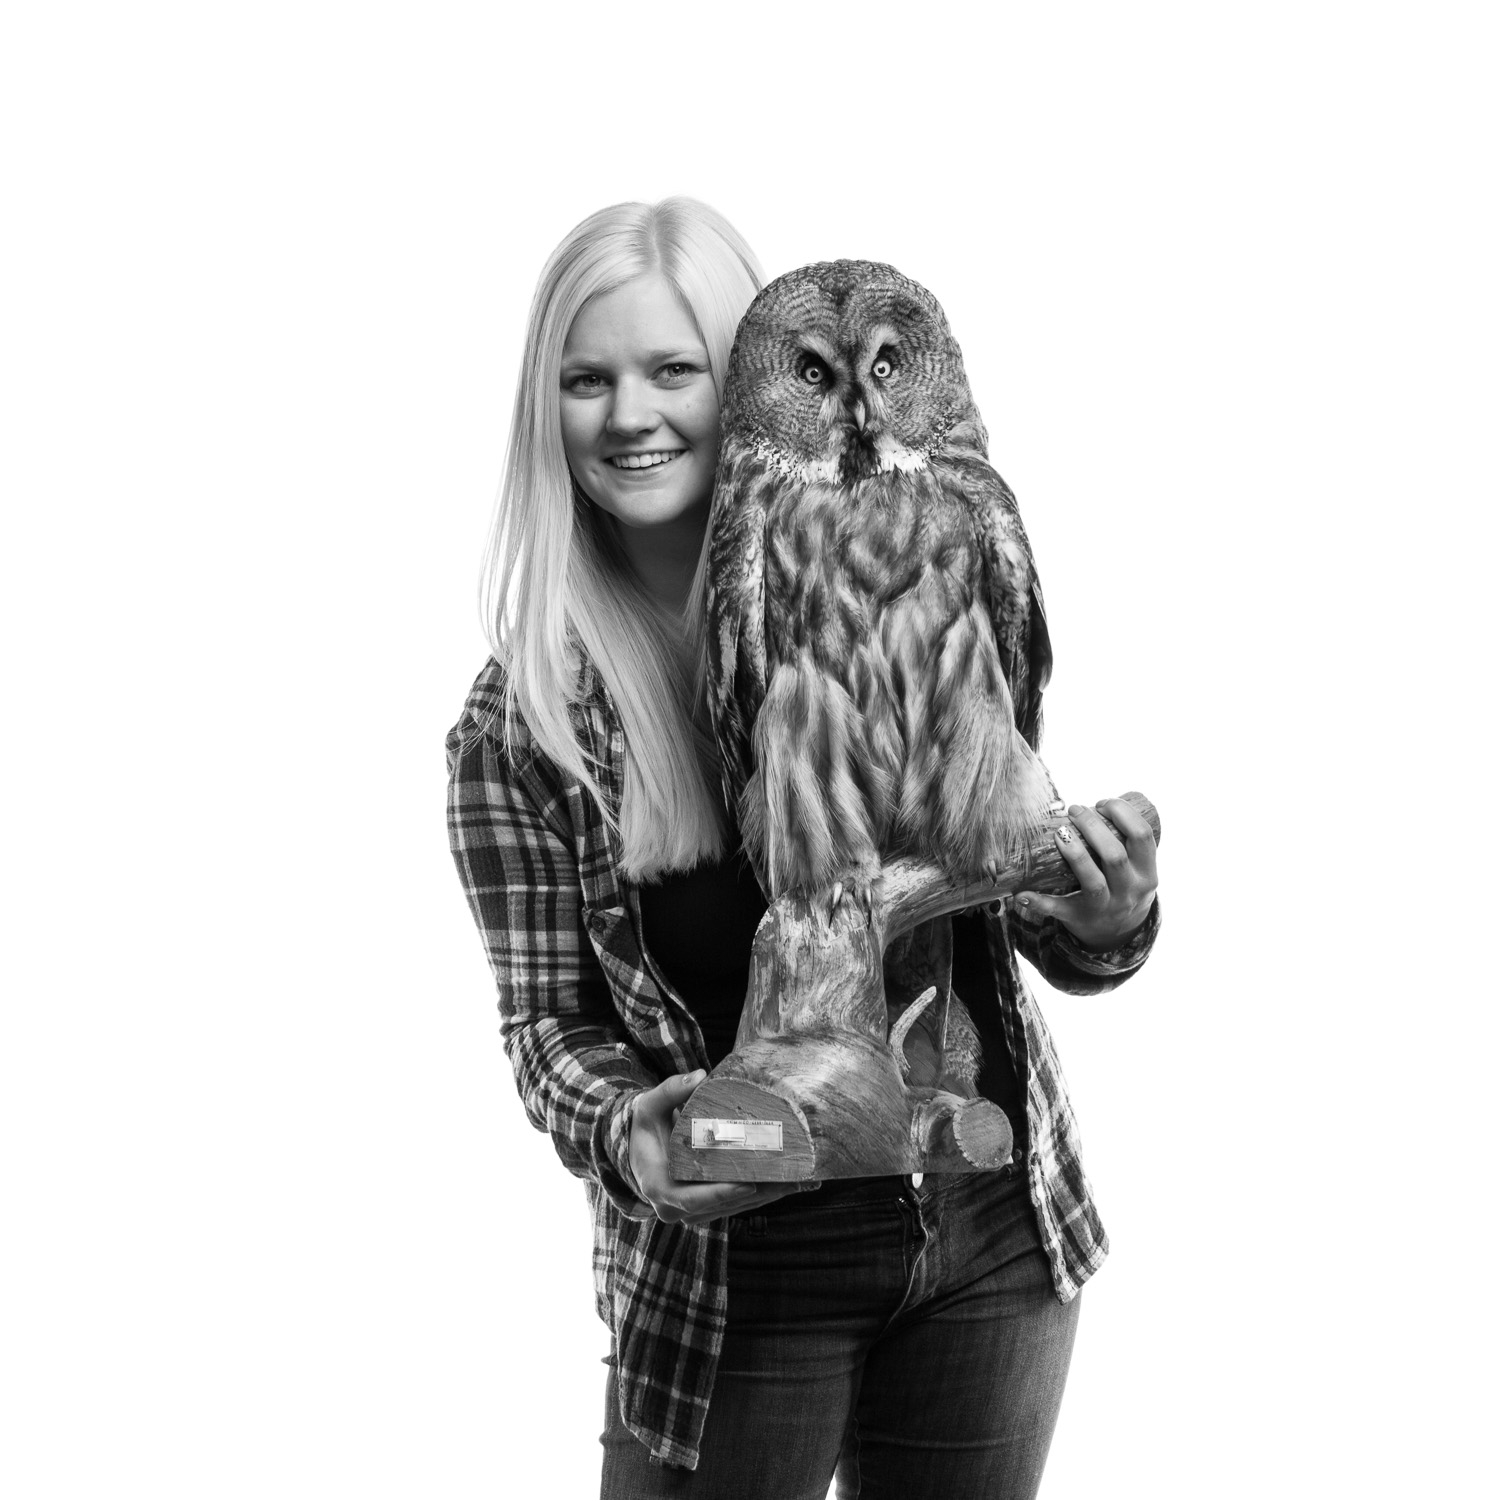 Student portrait with a Great grey owl for SLU, Umeå